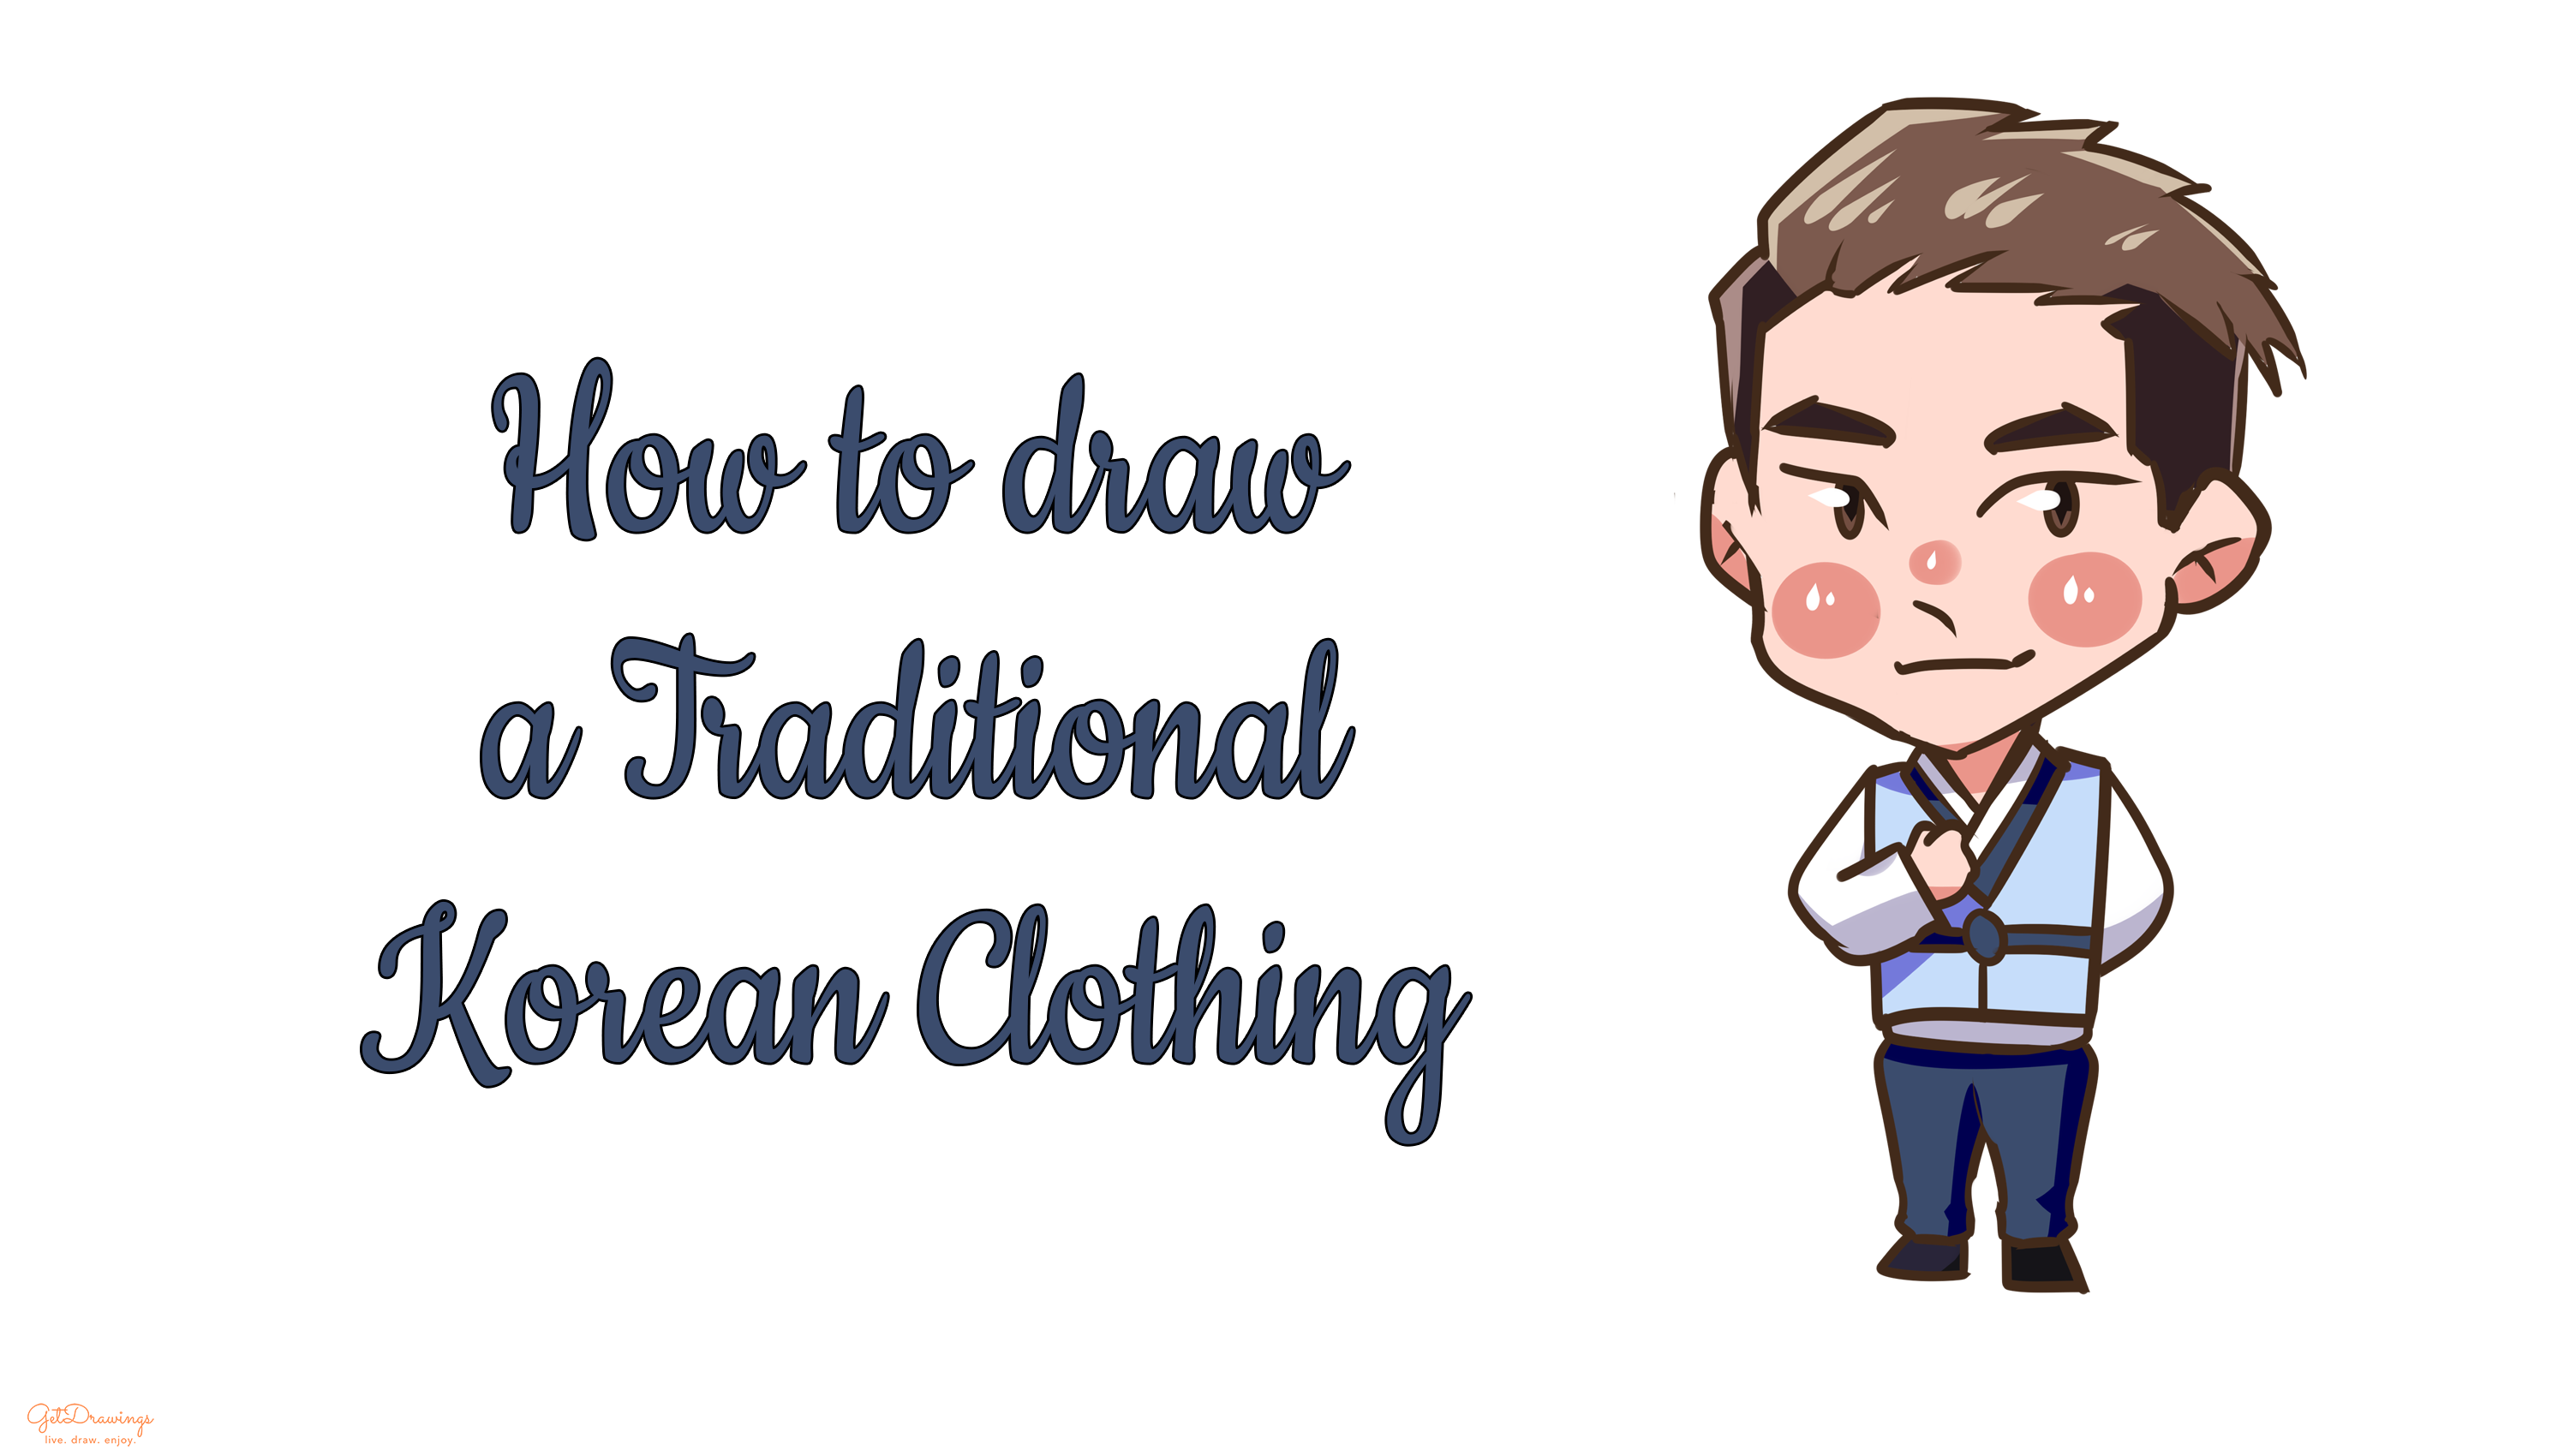 How to Draw a Traditional Korean Clothing